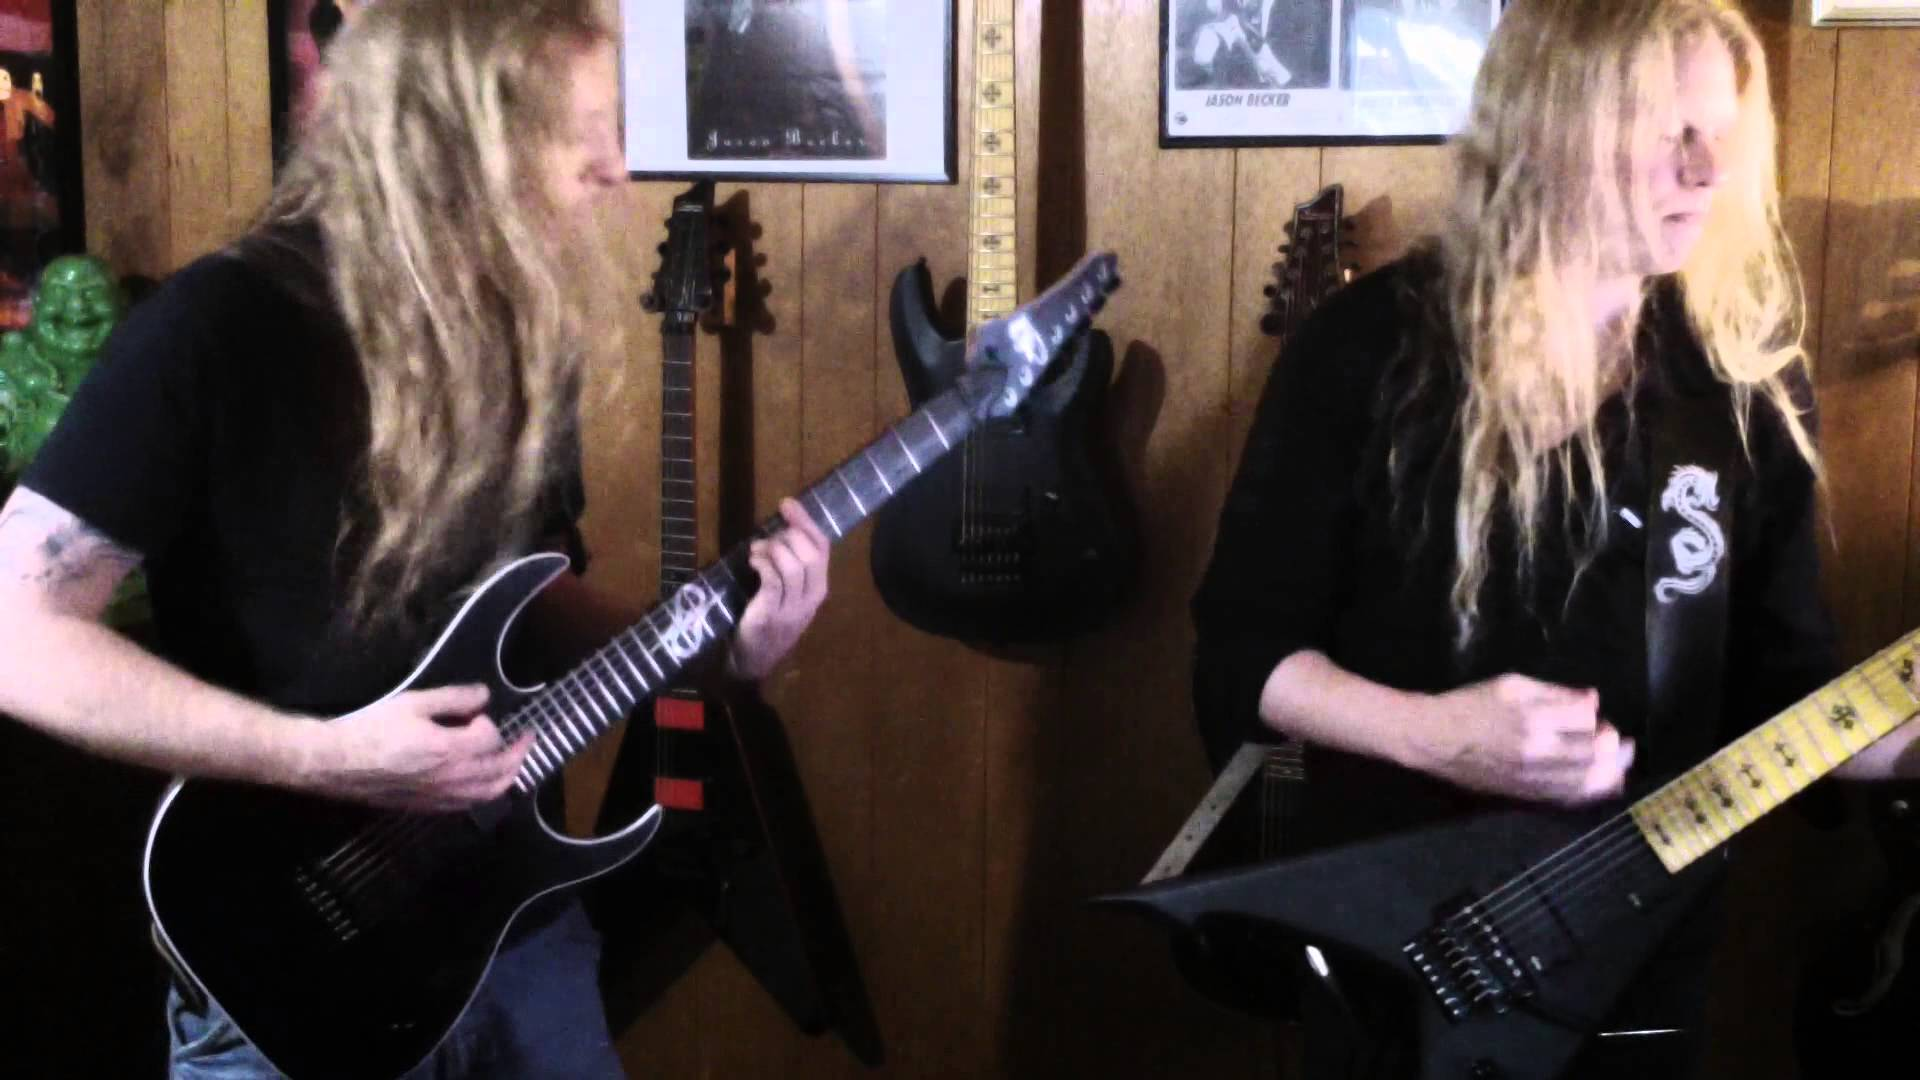 Jeff Loomis and Joe Nurre playing the song 'Surrender'